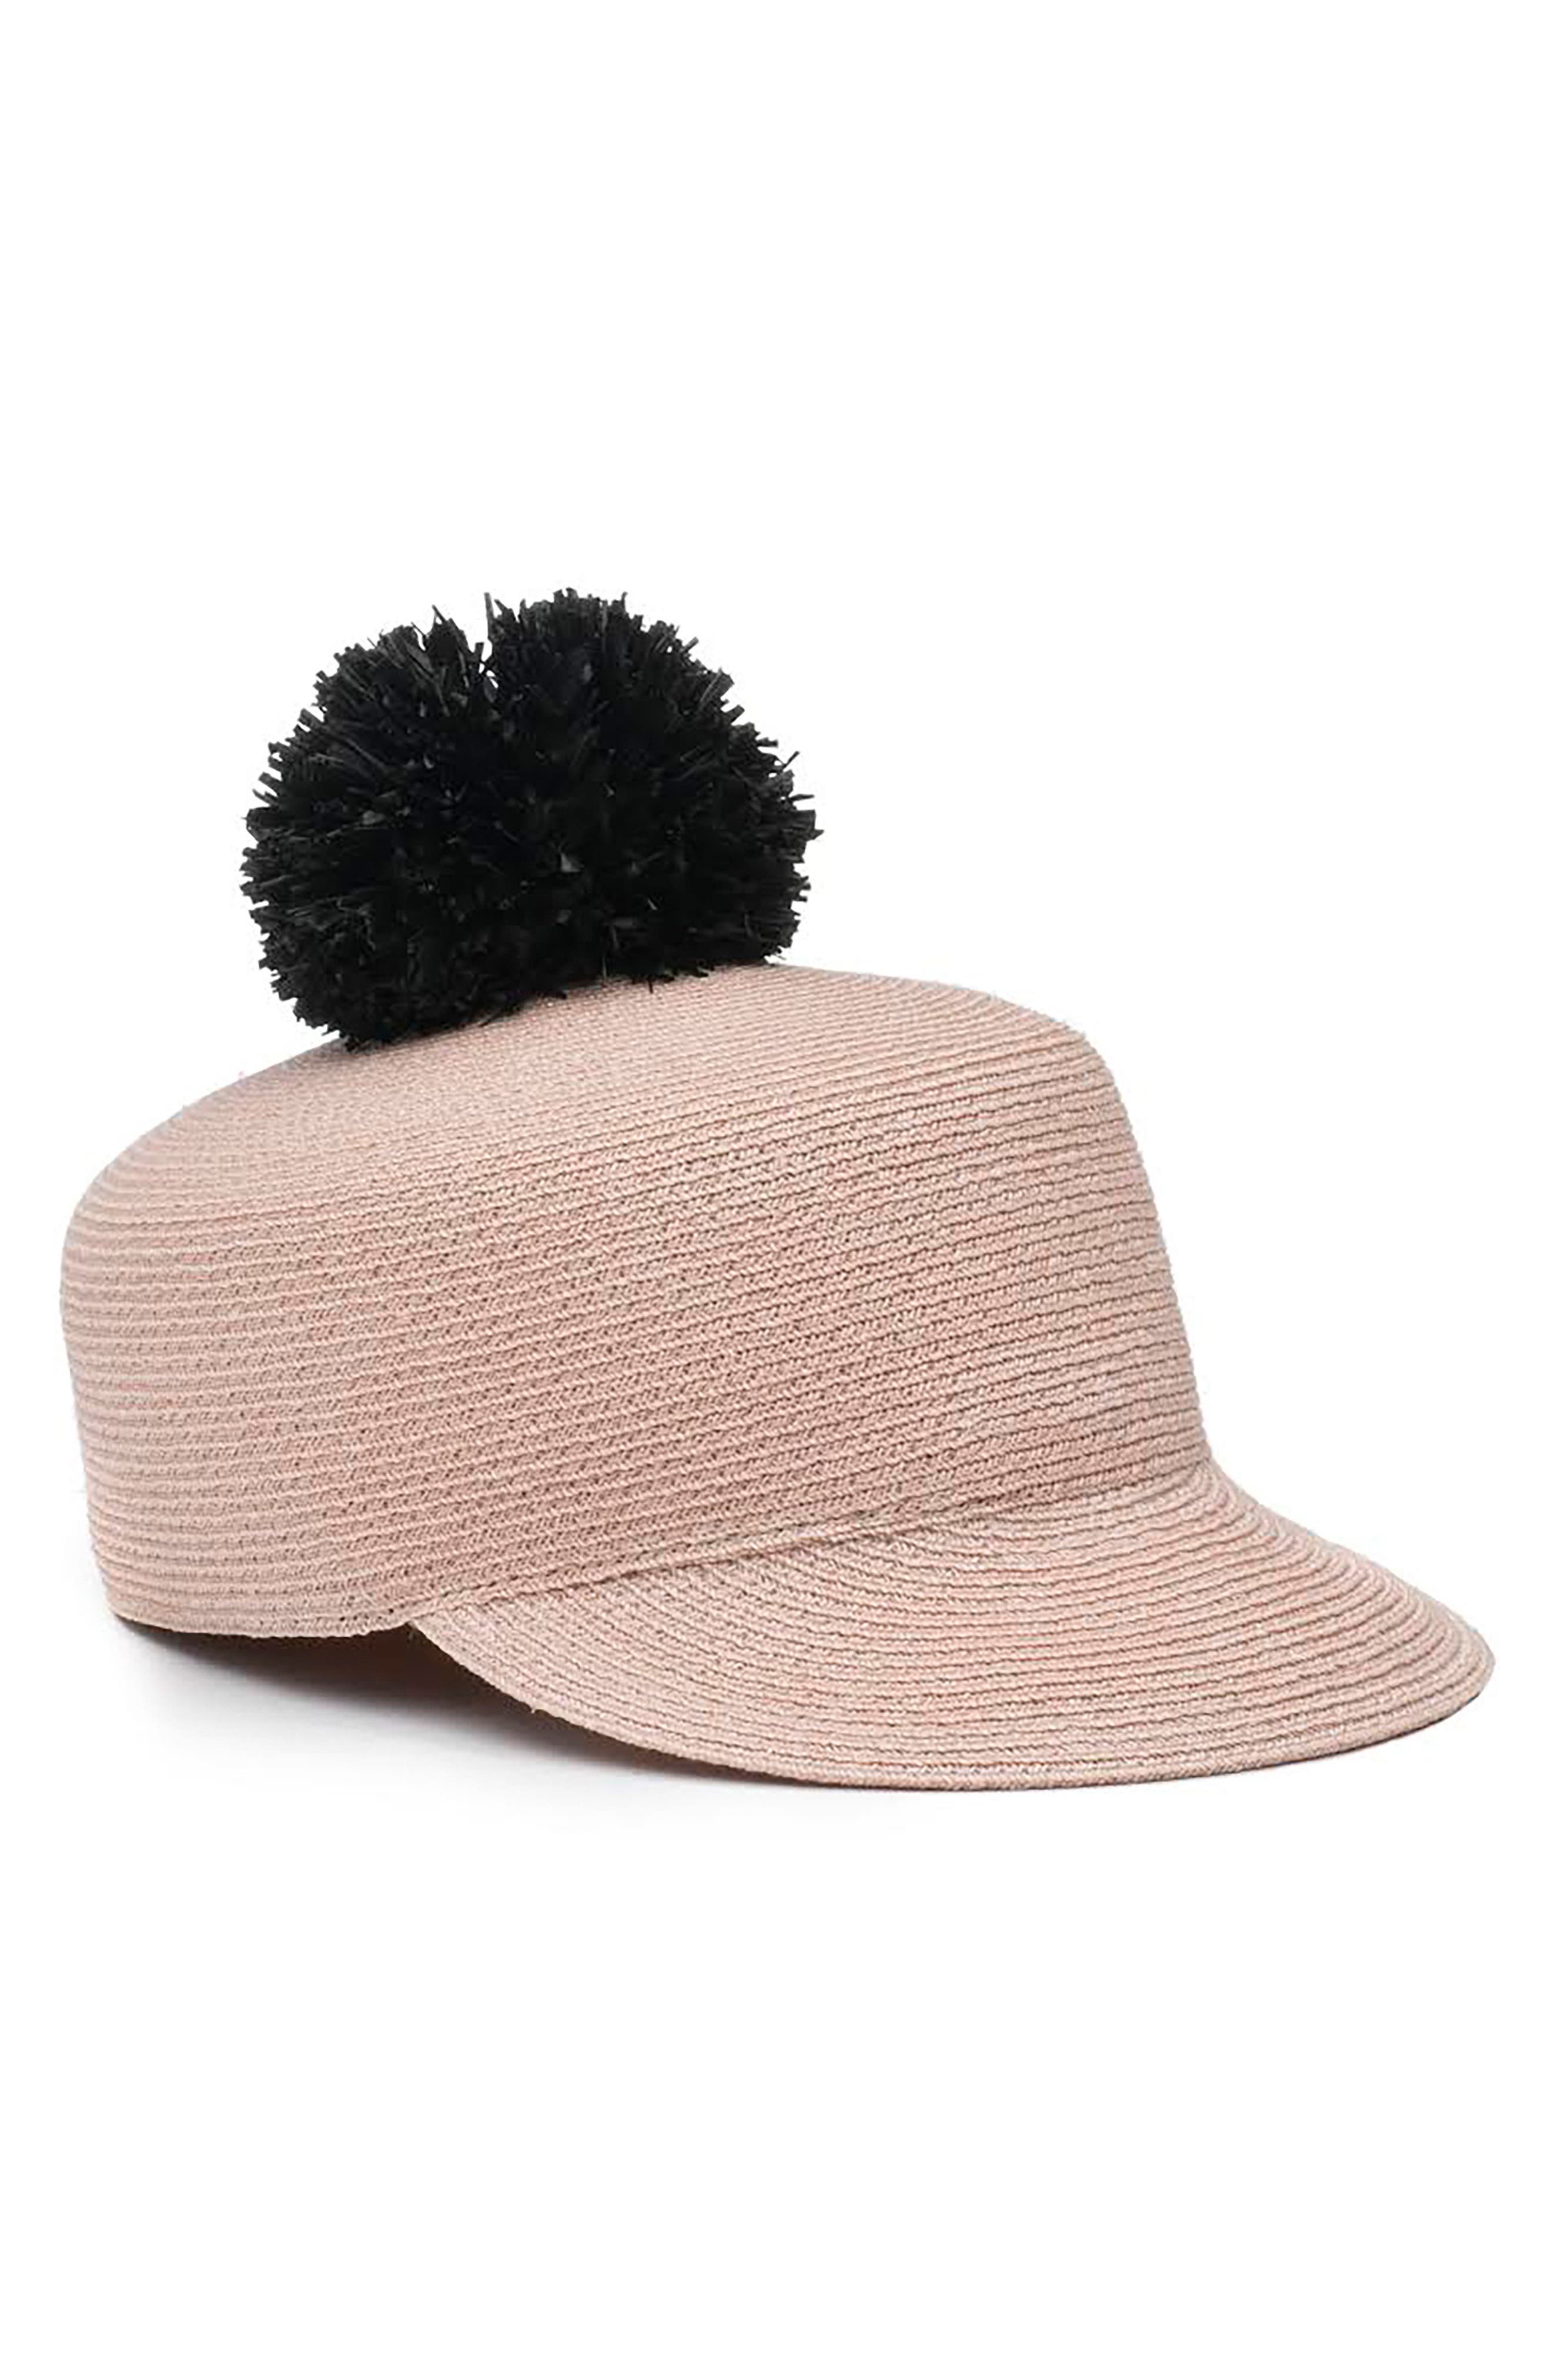 Pom Straw Hat,                             Main thumbnail 1, color,                             650